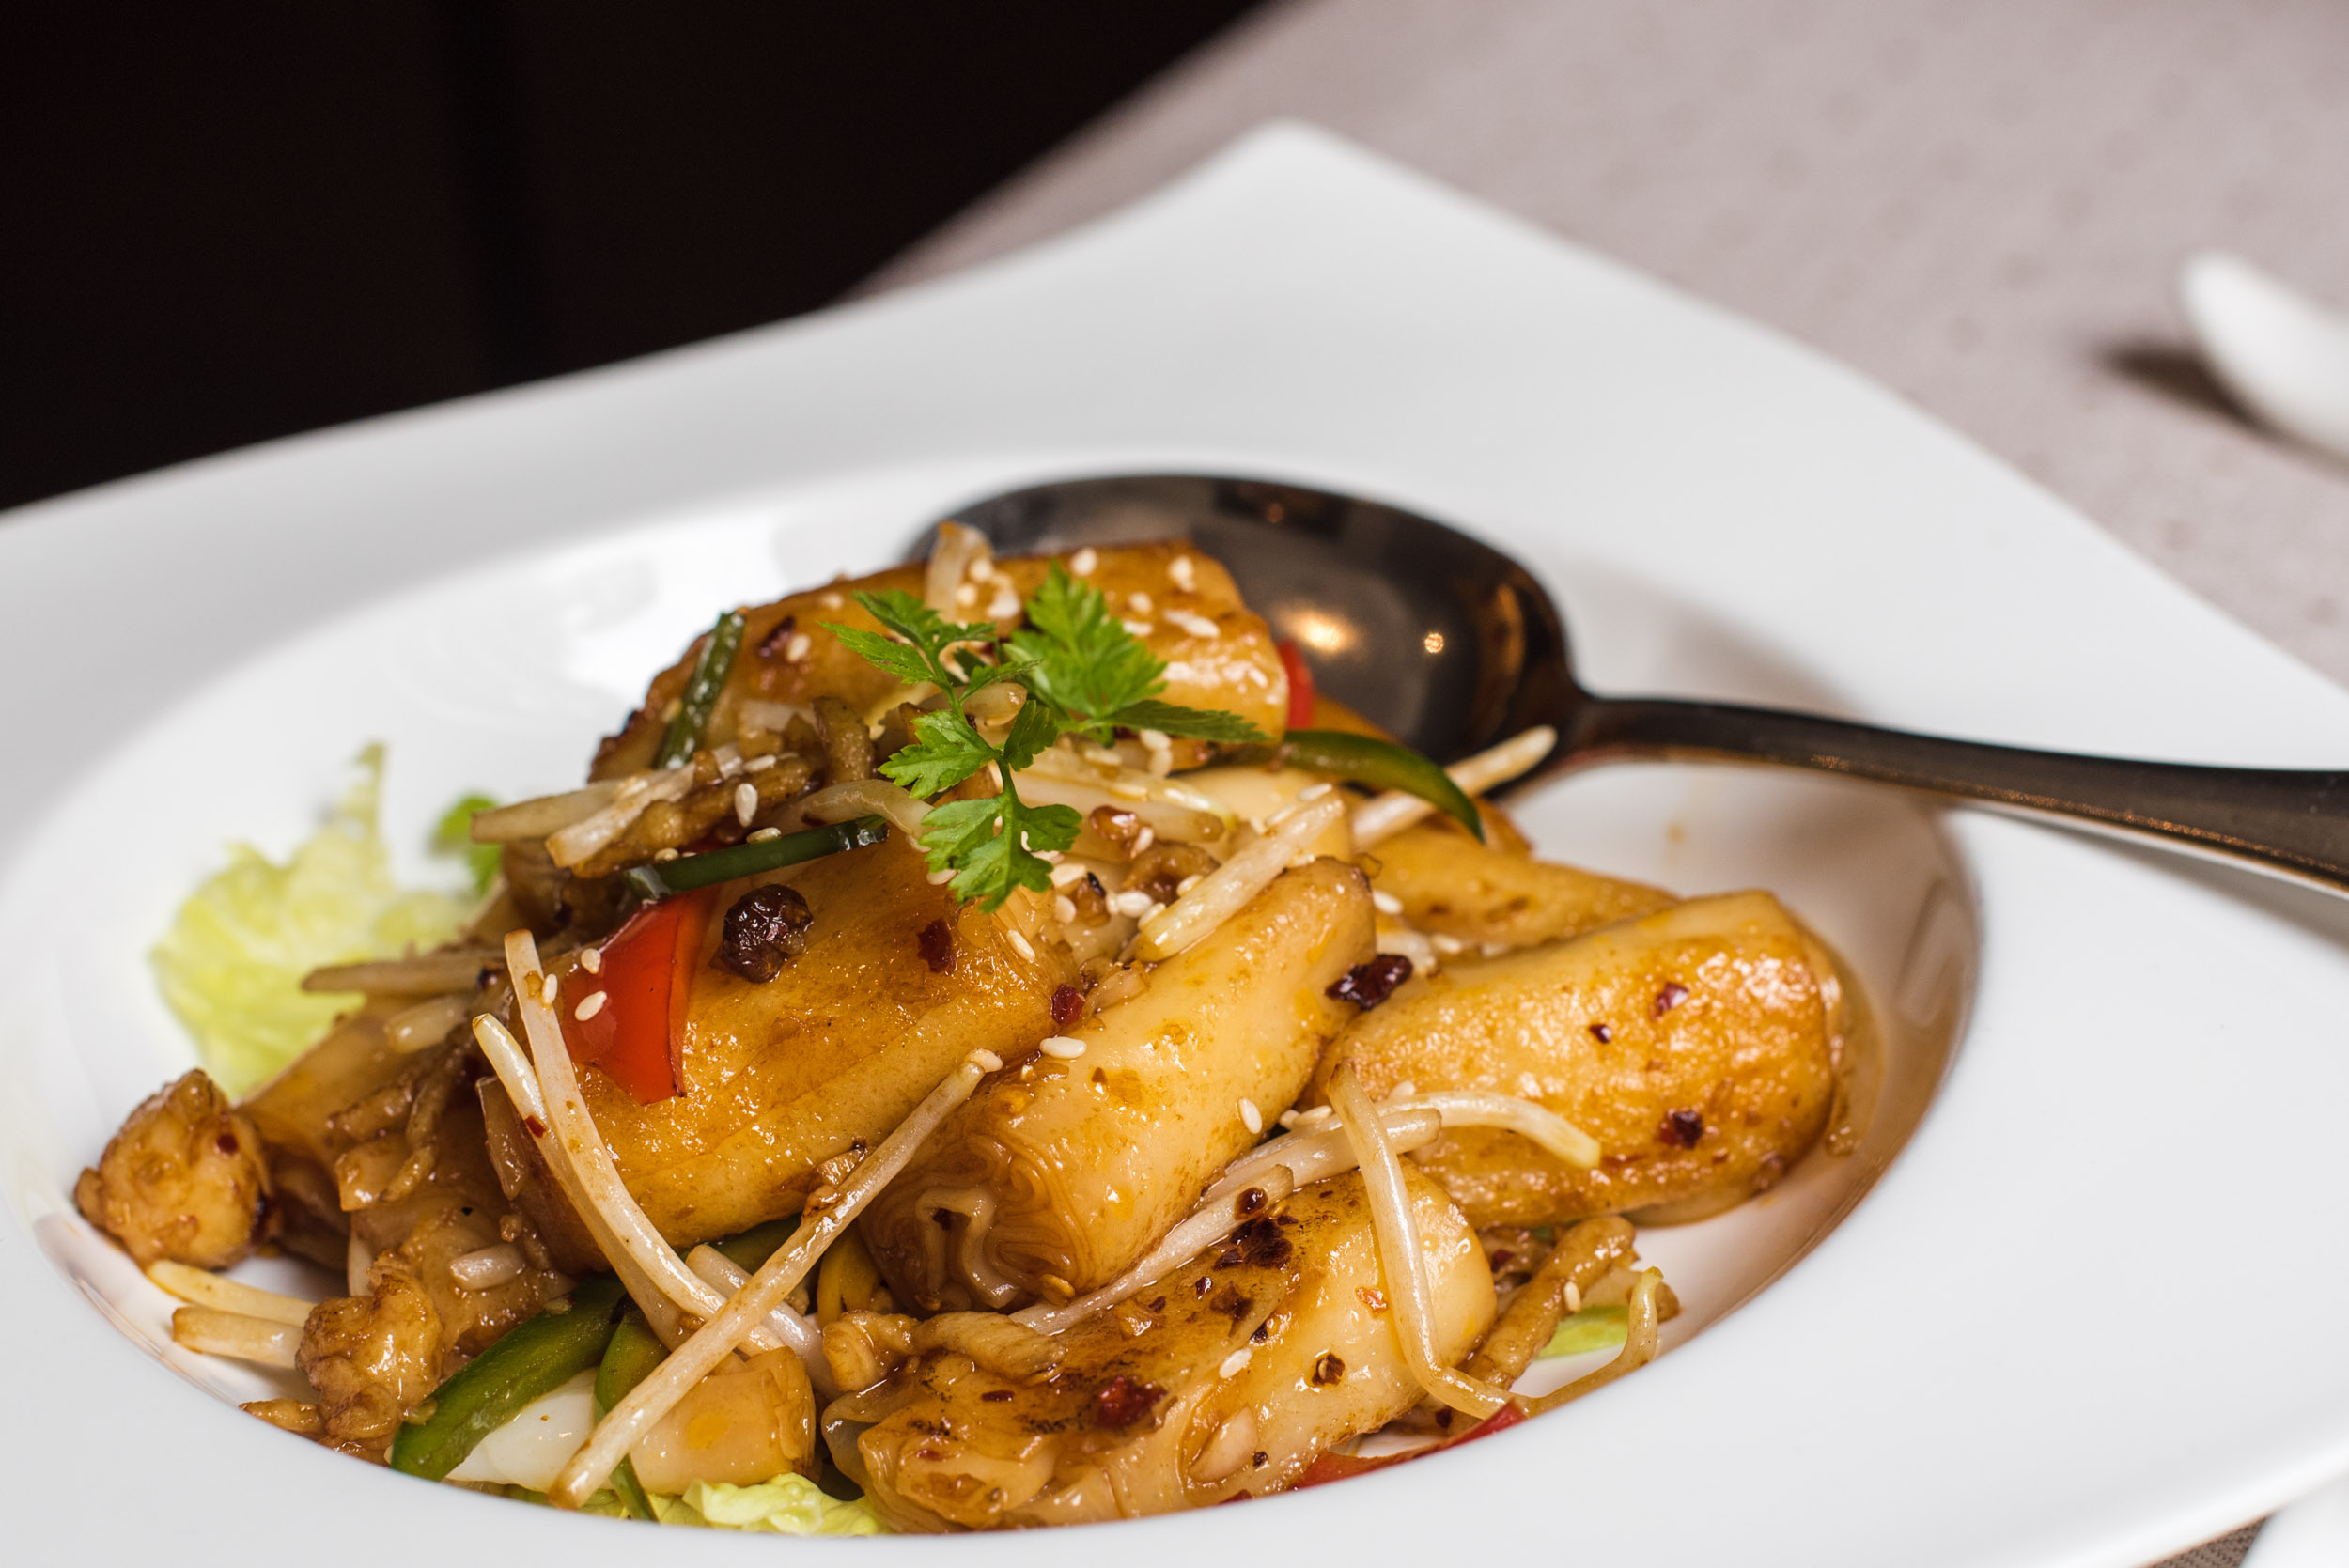 Wok-fried Cheng Fun with shredded Chicken, Bean Sprouts and Lettuce in Spicy Sauce